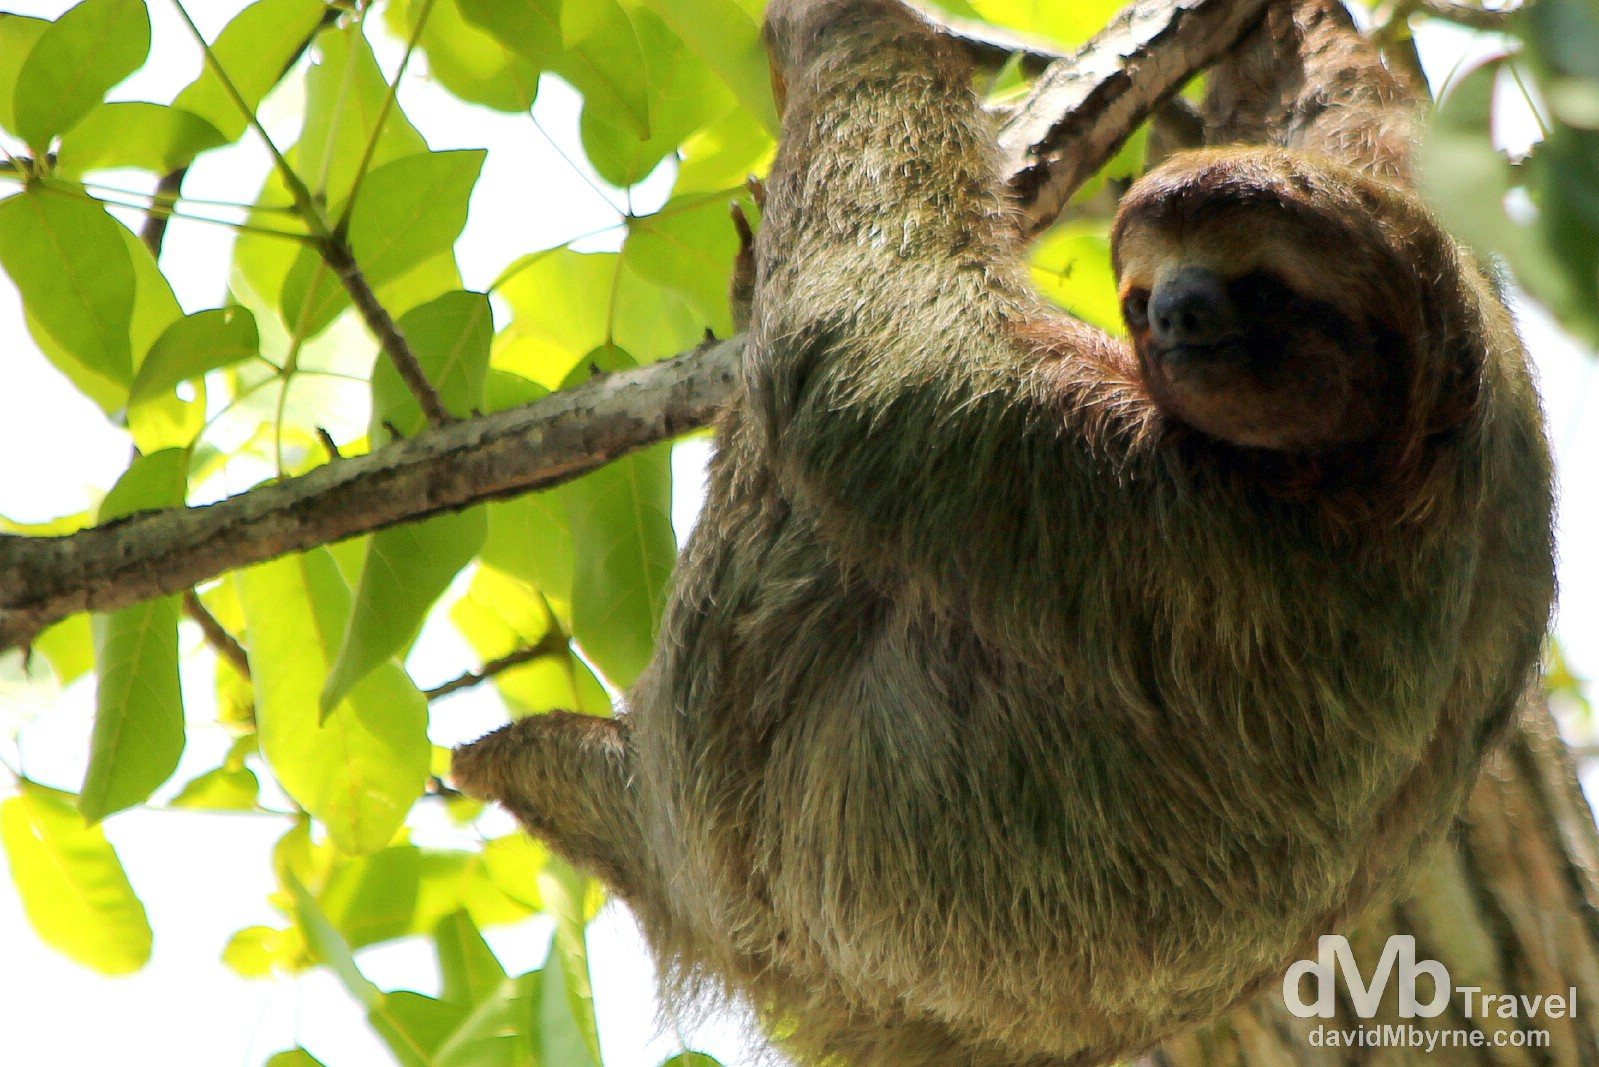 A sloth high in a tree in Parque Nacional Manuel Antonio, Costa Rica. June 26th 2013.